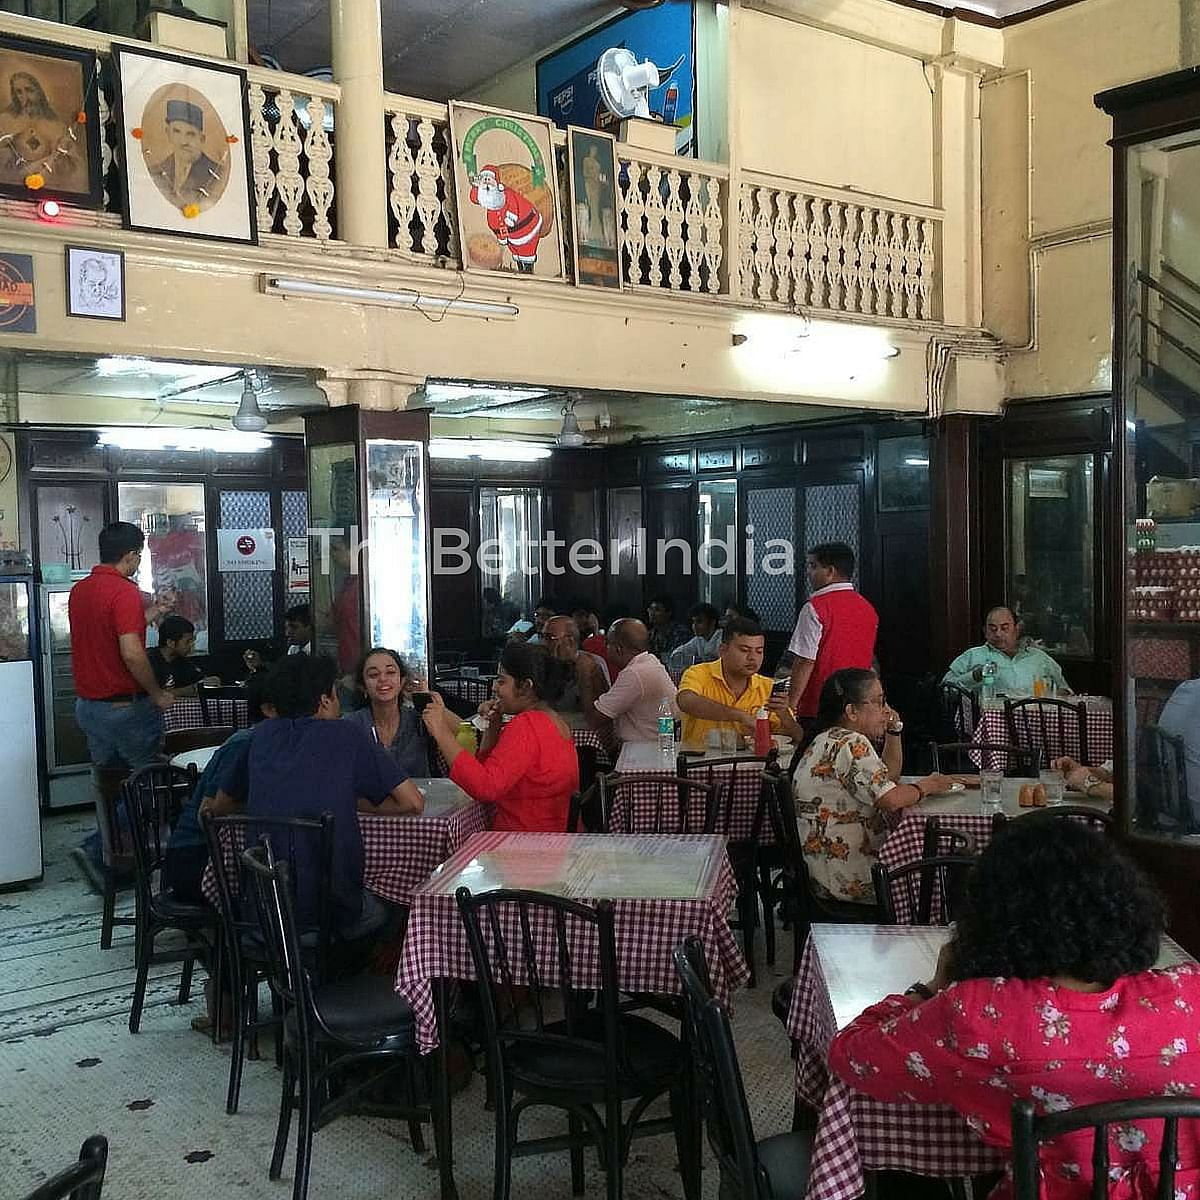 A bustling Kyani Bakery with its dark, aged wooden tables, covered with the quintessential red-and-white checked tablecloth.